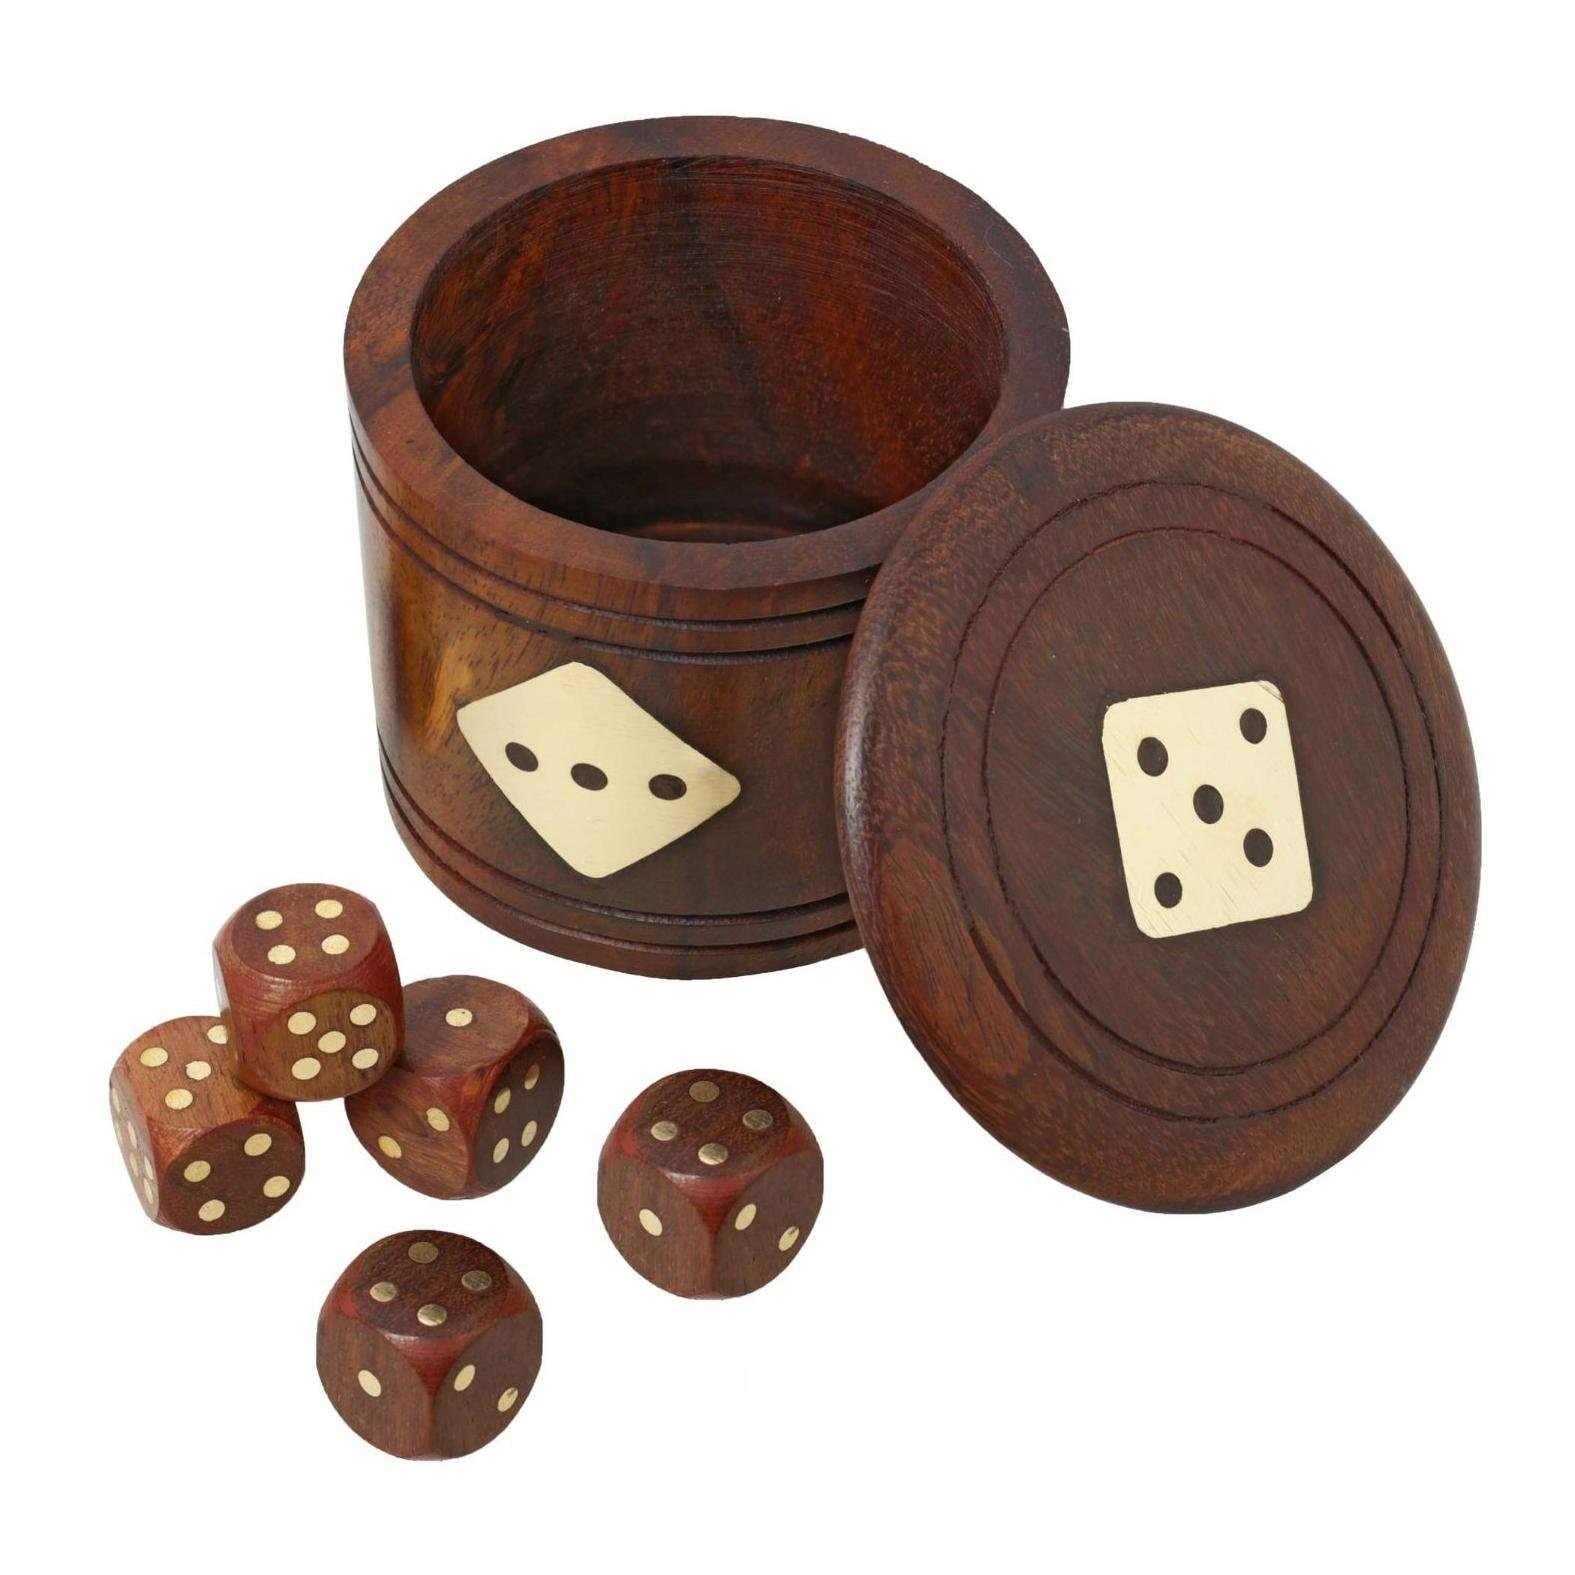 RoyaltyRoute Set of 12 Wooden Dice Shaker with Set of 5 Dice Deluxe Storage Case with Natural Finish